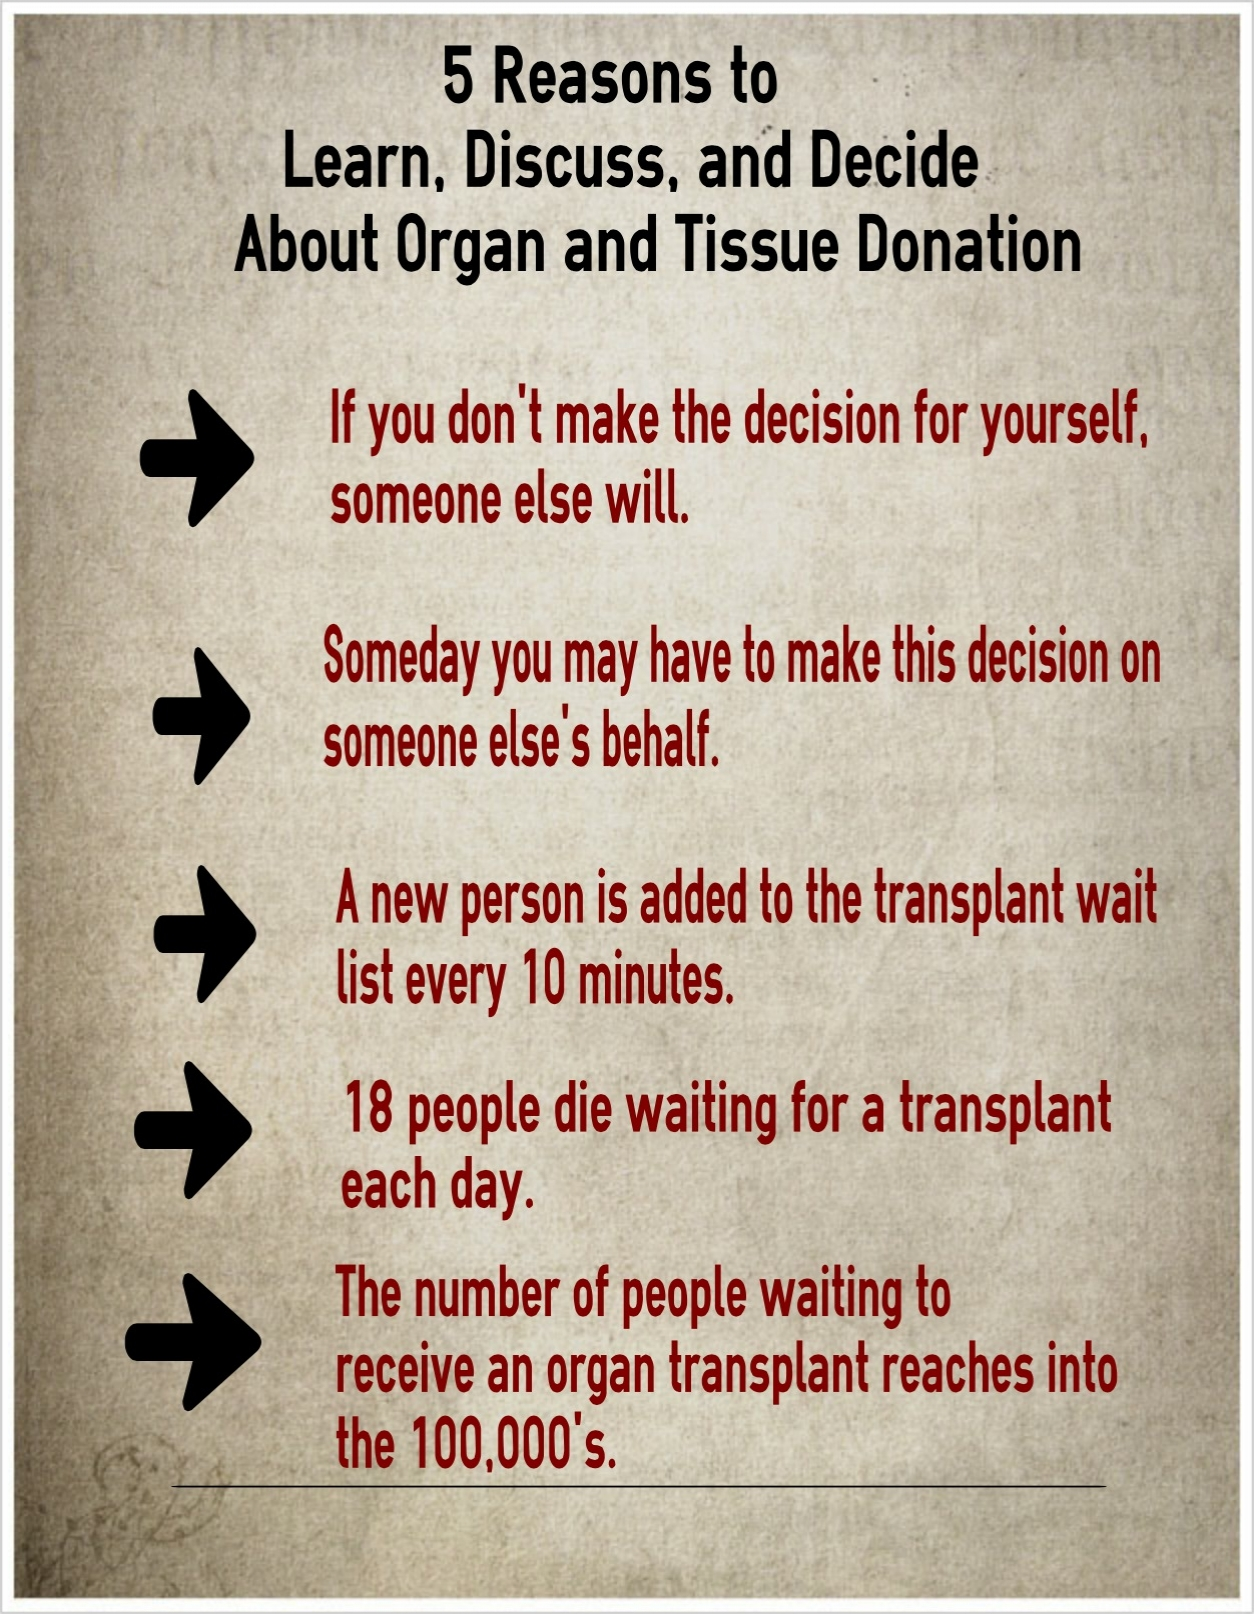 FREE Organ Donation: The Act of Saving Lives Essay